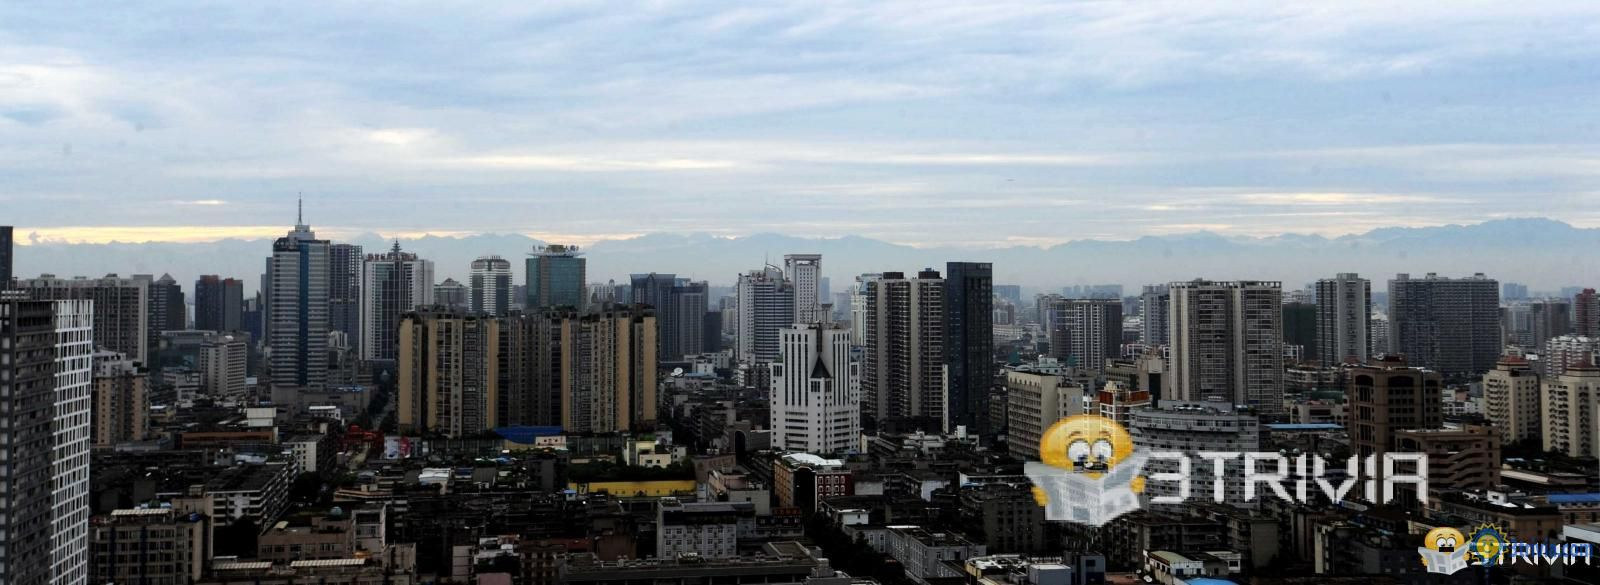 Chengdu is the largest city with the largest altitude difference in the world.